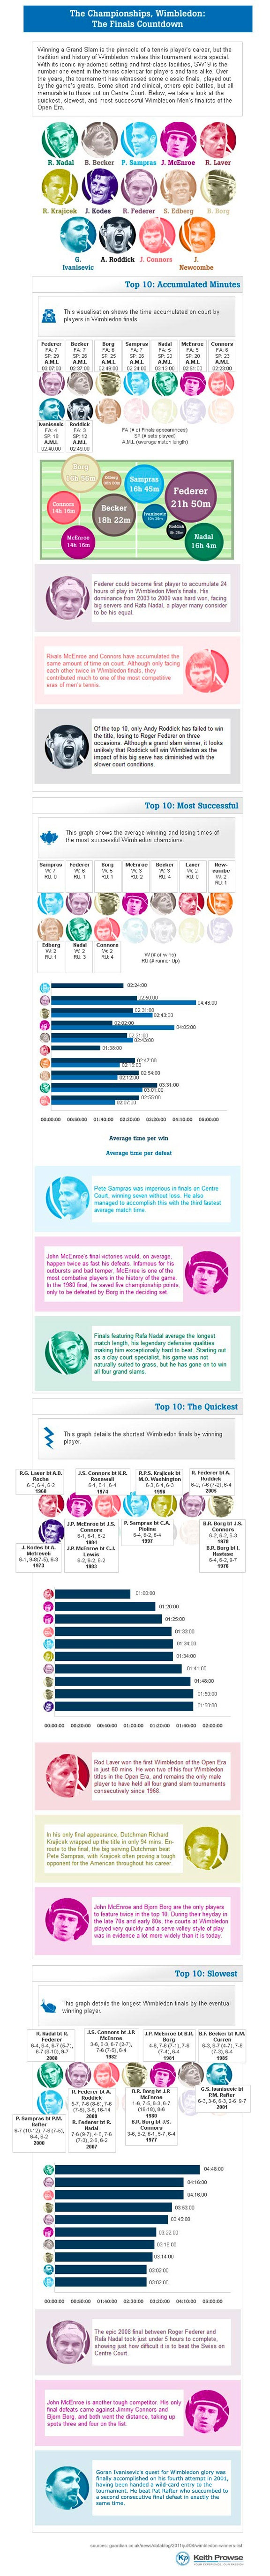 Fresh on IGM > The Wimbledon Champions History - http://infographicsmania.com/the-wimbledon-champions-history/